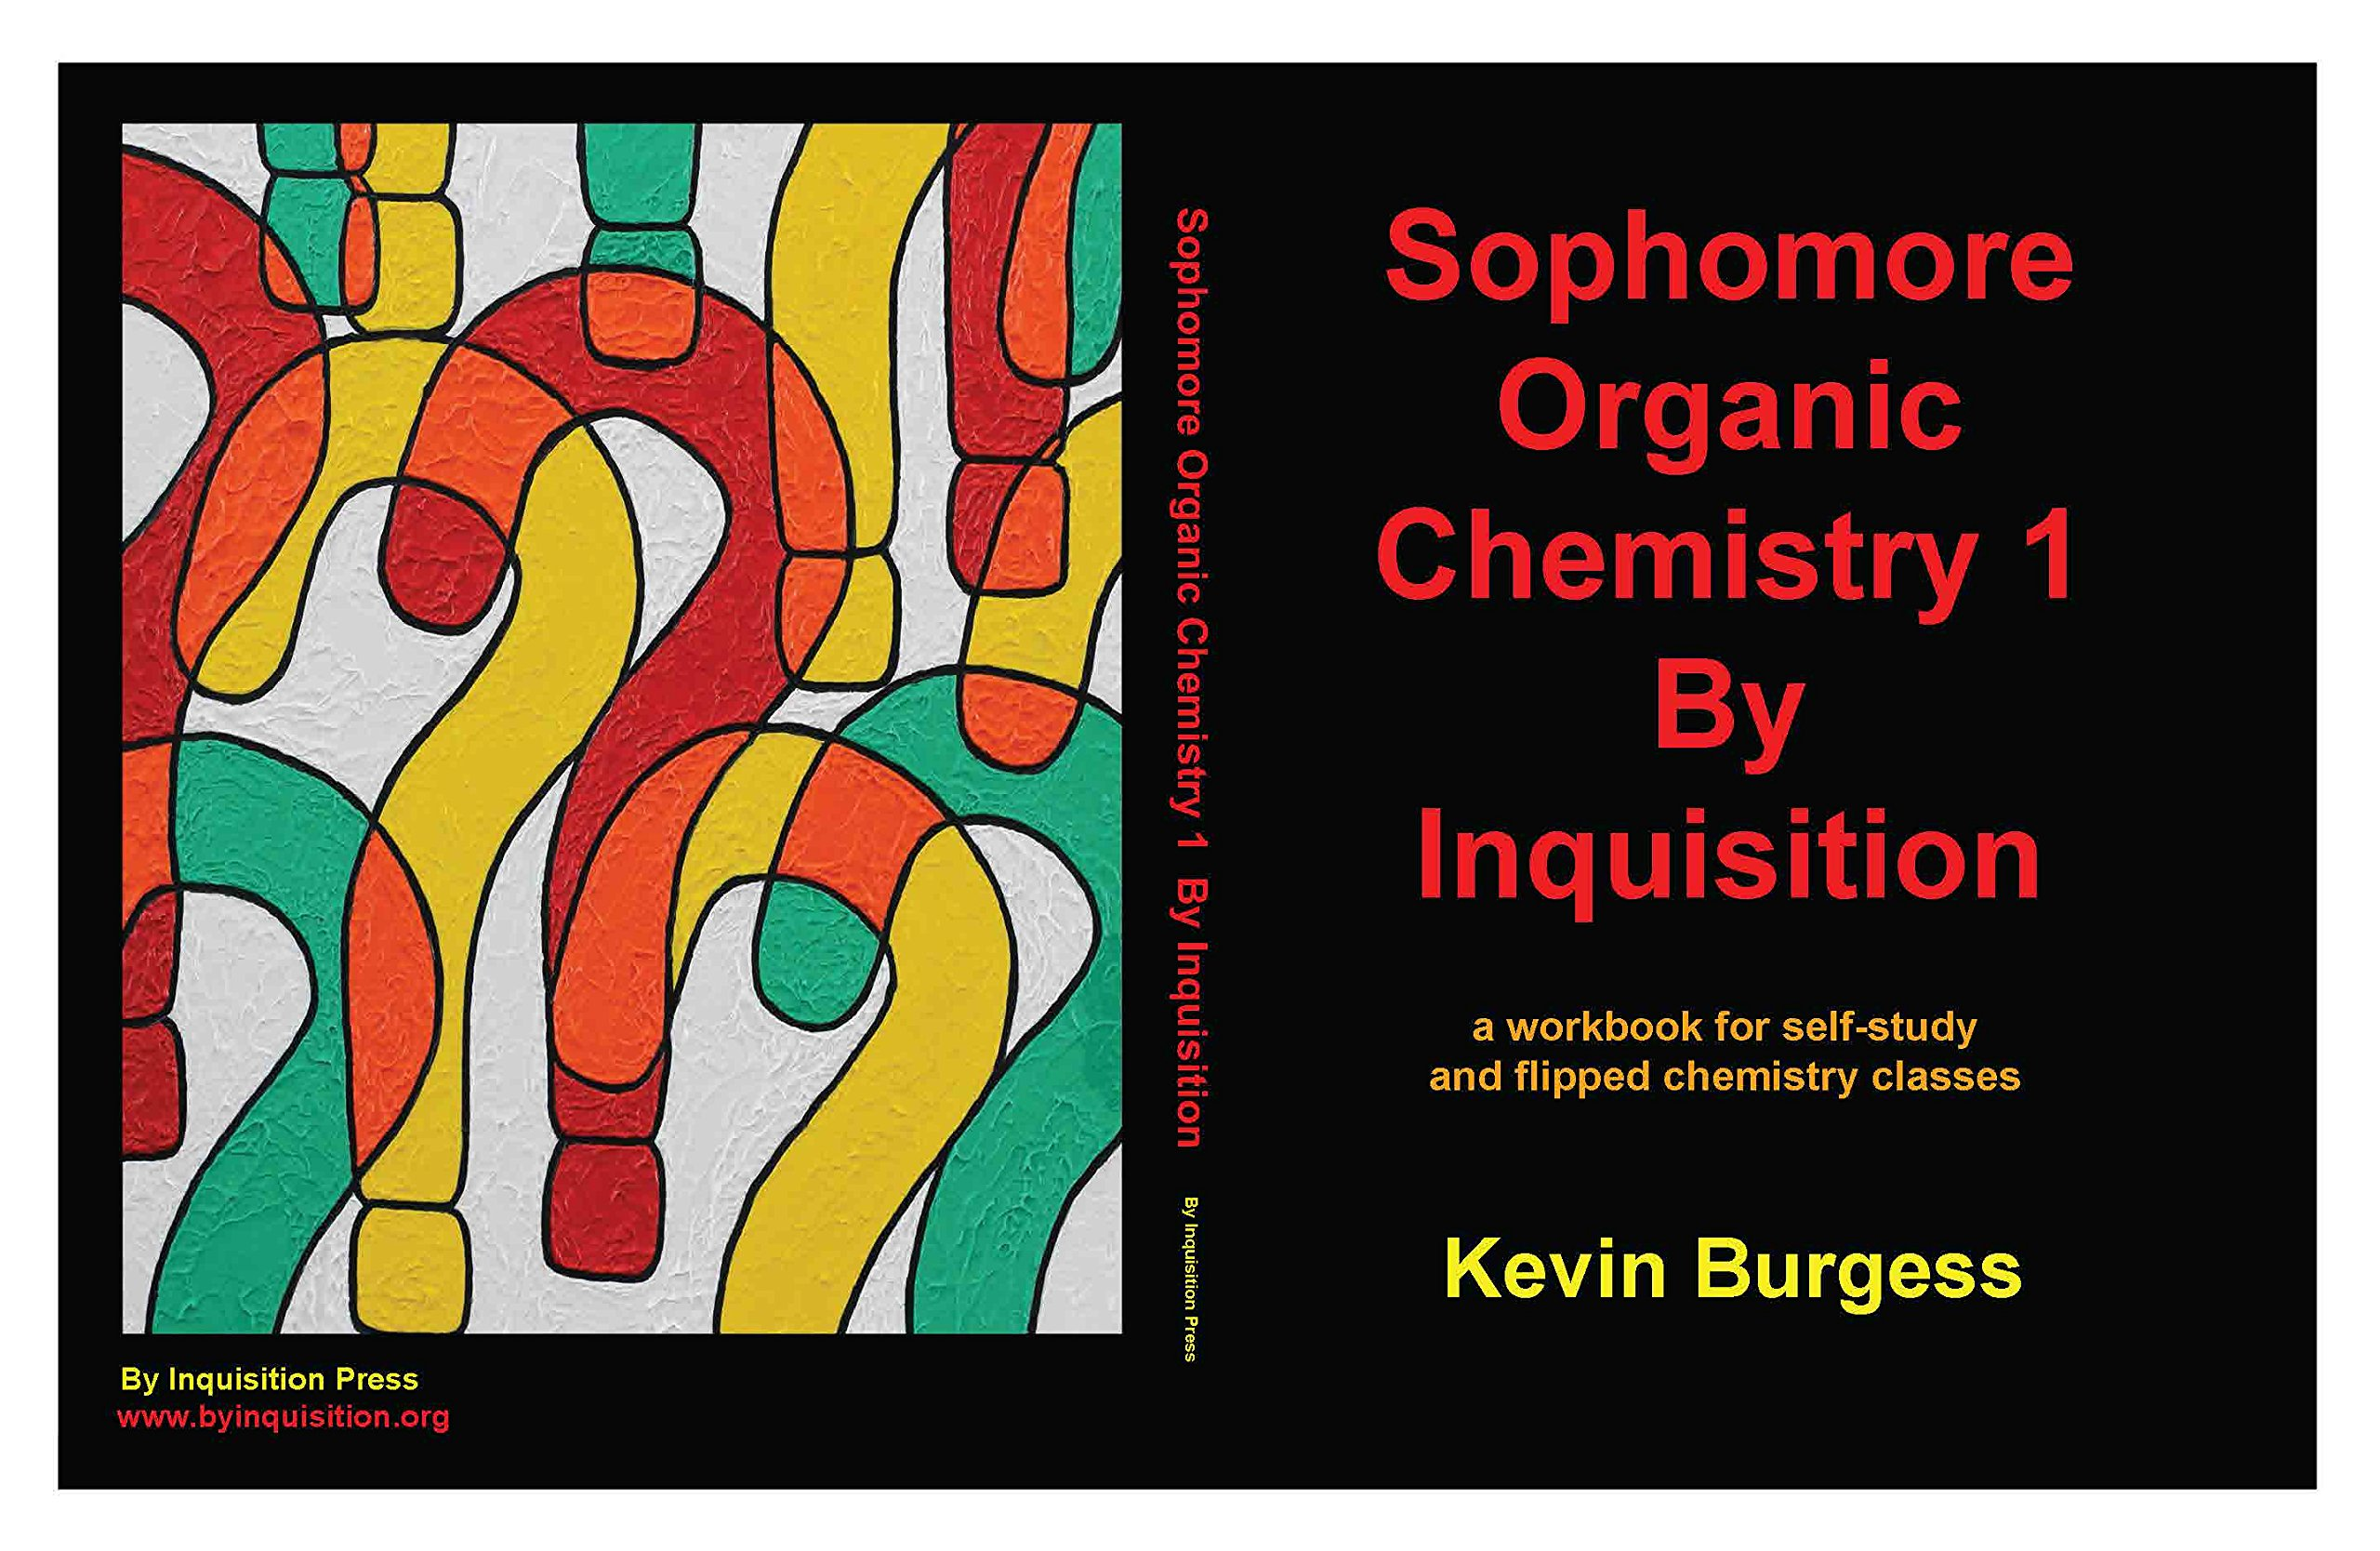 Sophomore Organic Chemistry 1 By Inquisition: a workbook for self-study and  flipped chemistry classes: Kevin Burgess: 9780692774434: Amazon.com: Books